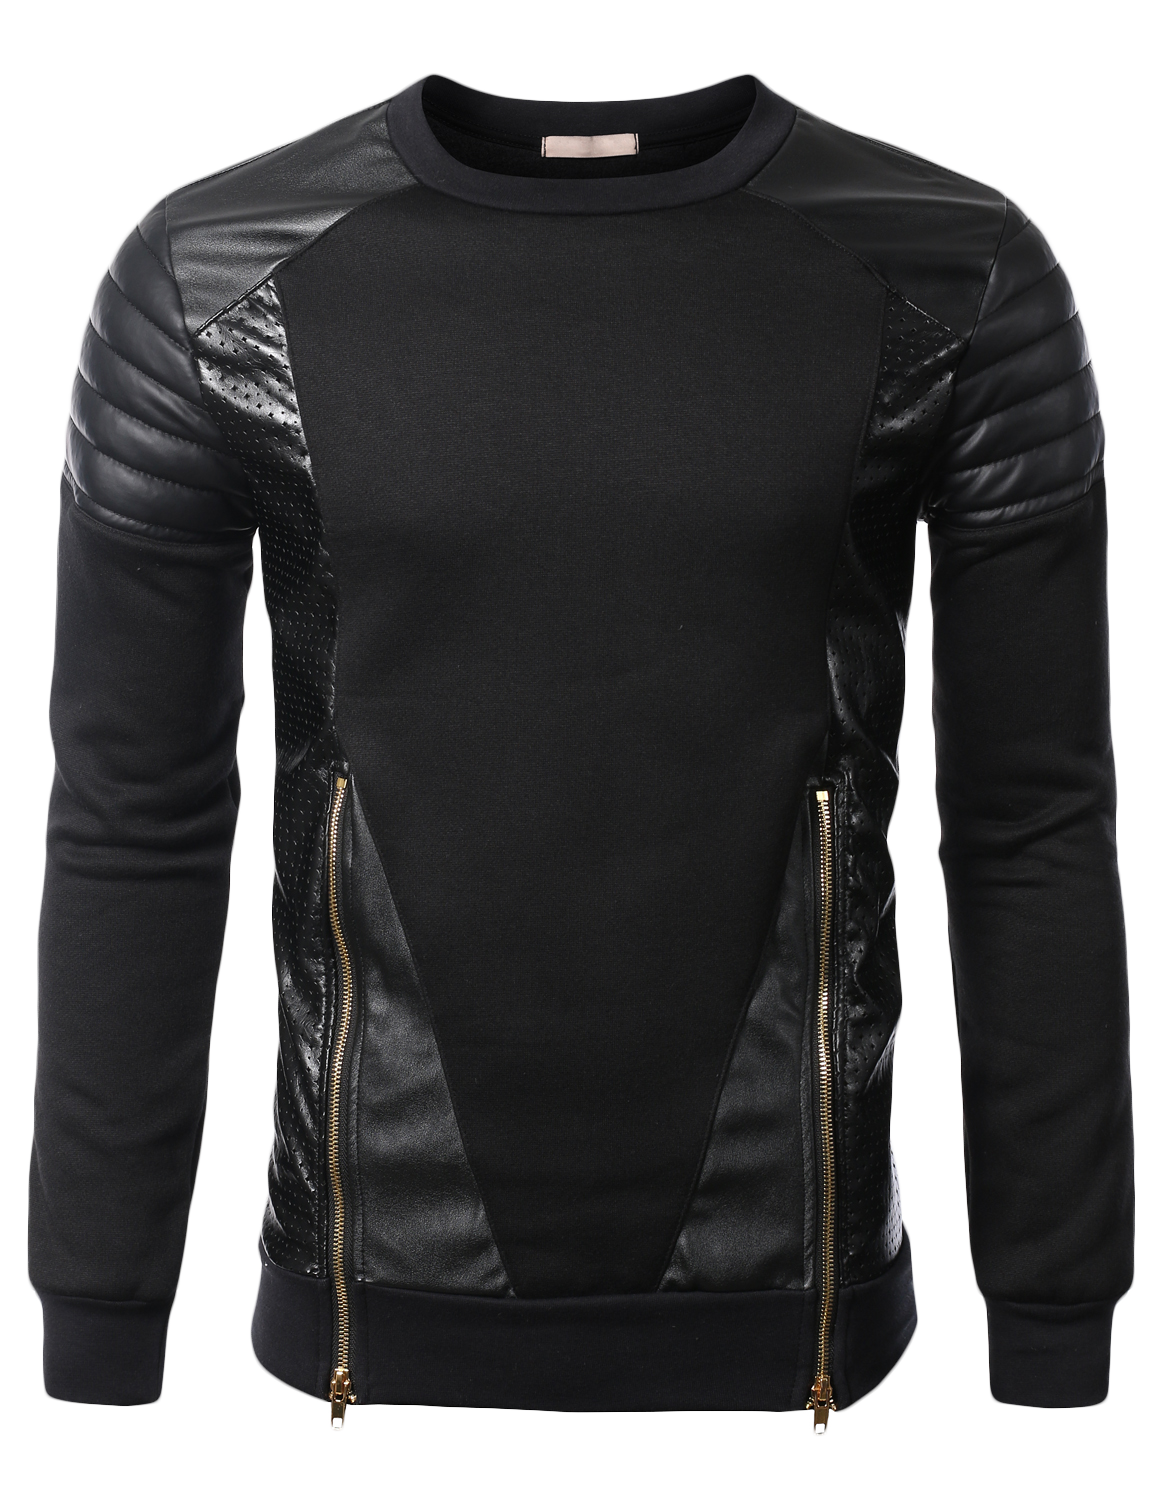 a00b6ae51731 SMITHJAY Mens Hip-Hop Leather Padding Power Shoulder Sweatshirt w  Zipper  Trim  smithjay